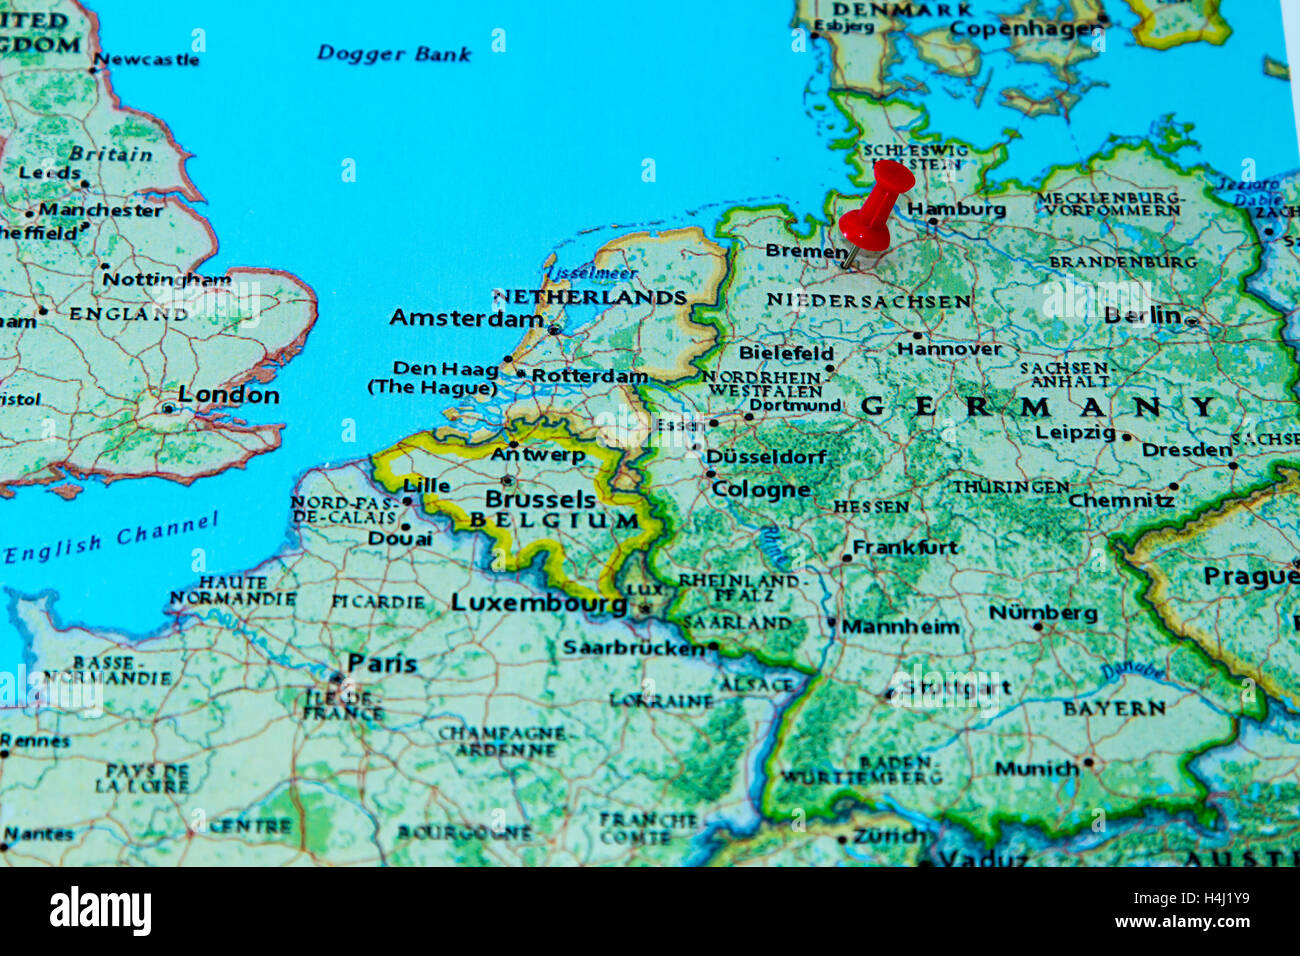 Bremen Germany Pinned On A Map Of Europe Stock Photo Royalty - Germany map bremen